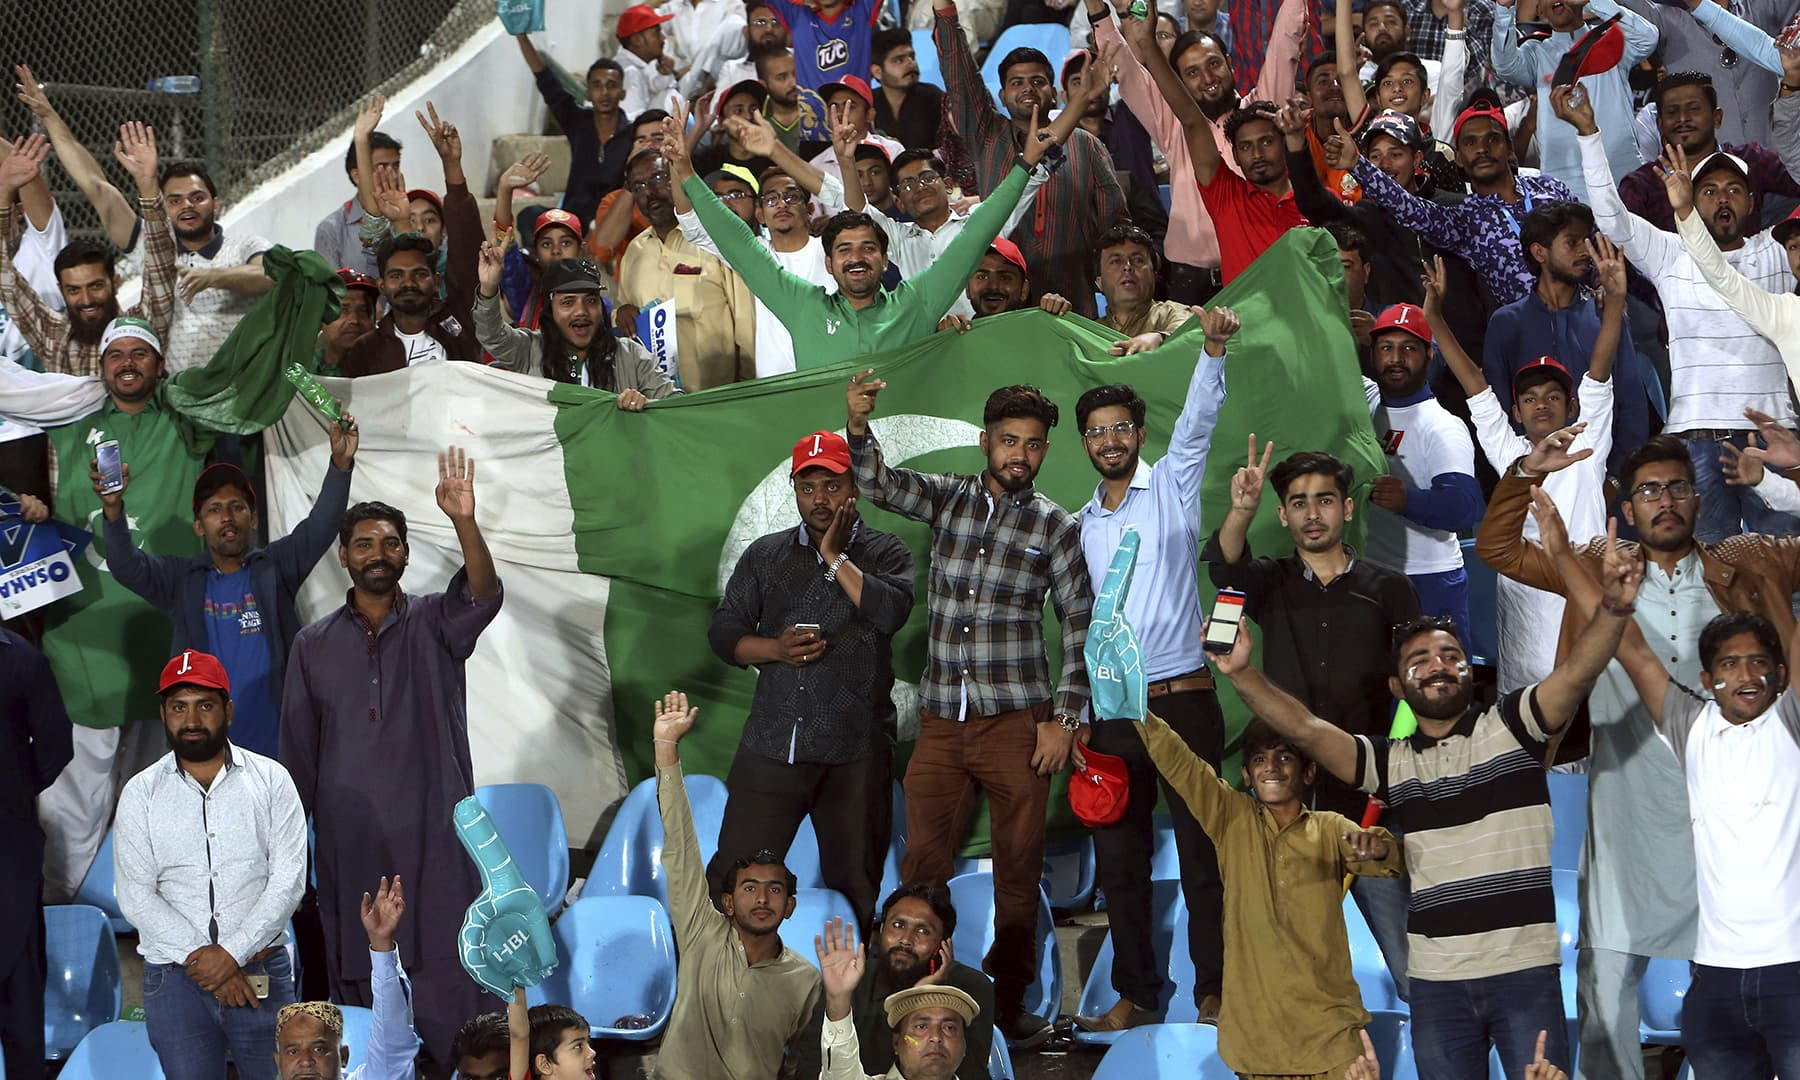 Spectators cheering and waving the Pakistan flag proudly. — AP